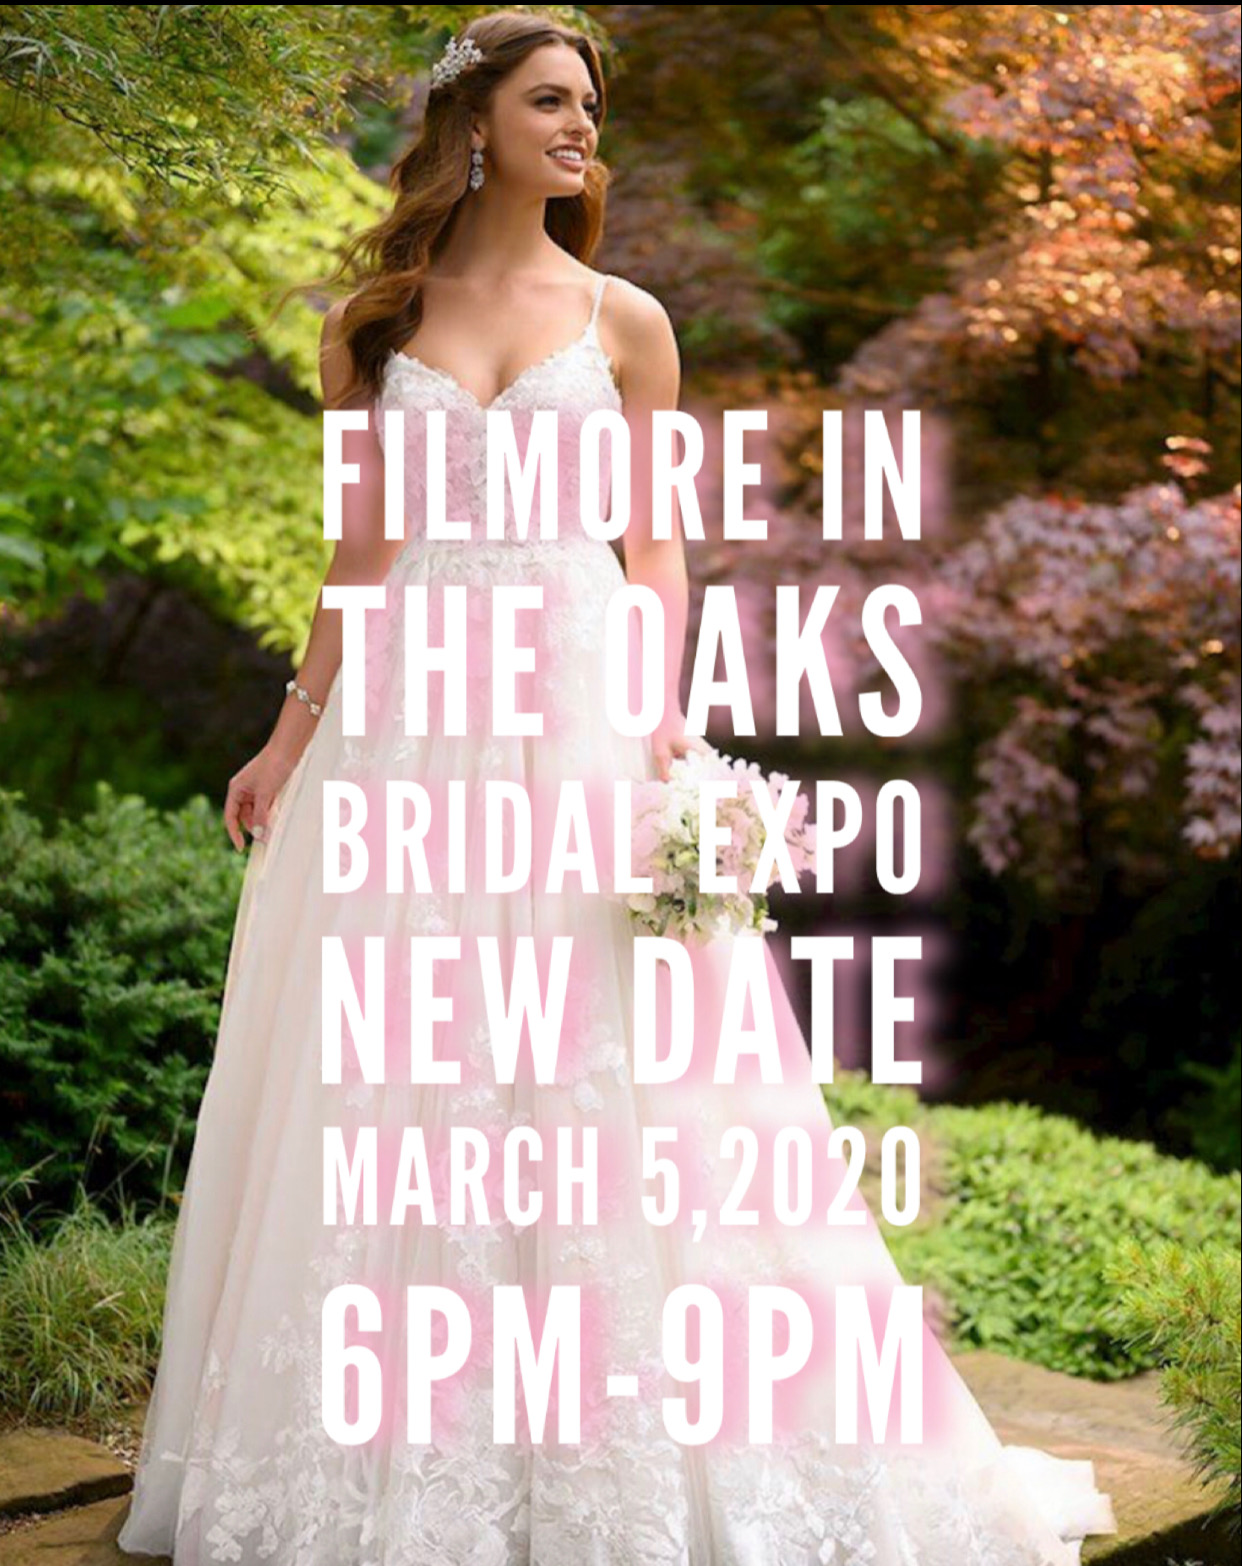 Filmore in the Oaks Bridal Expo Rescheduled Date 3/5/2020